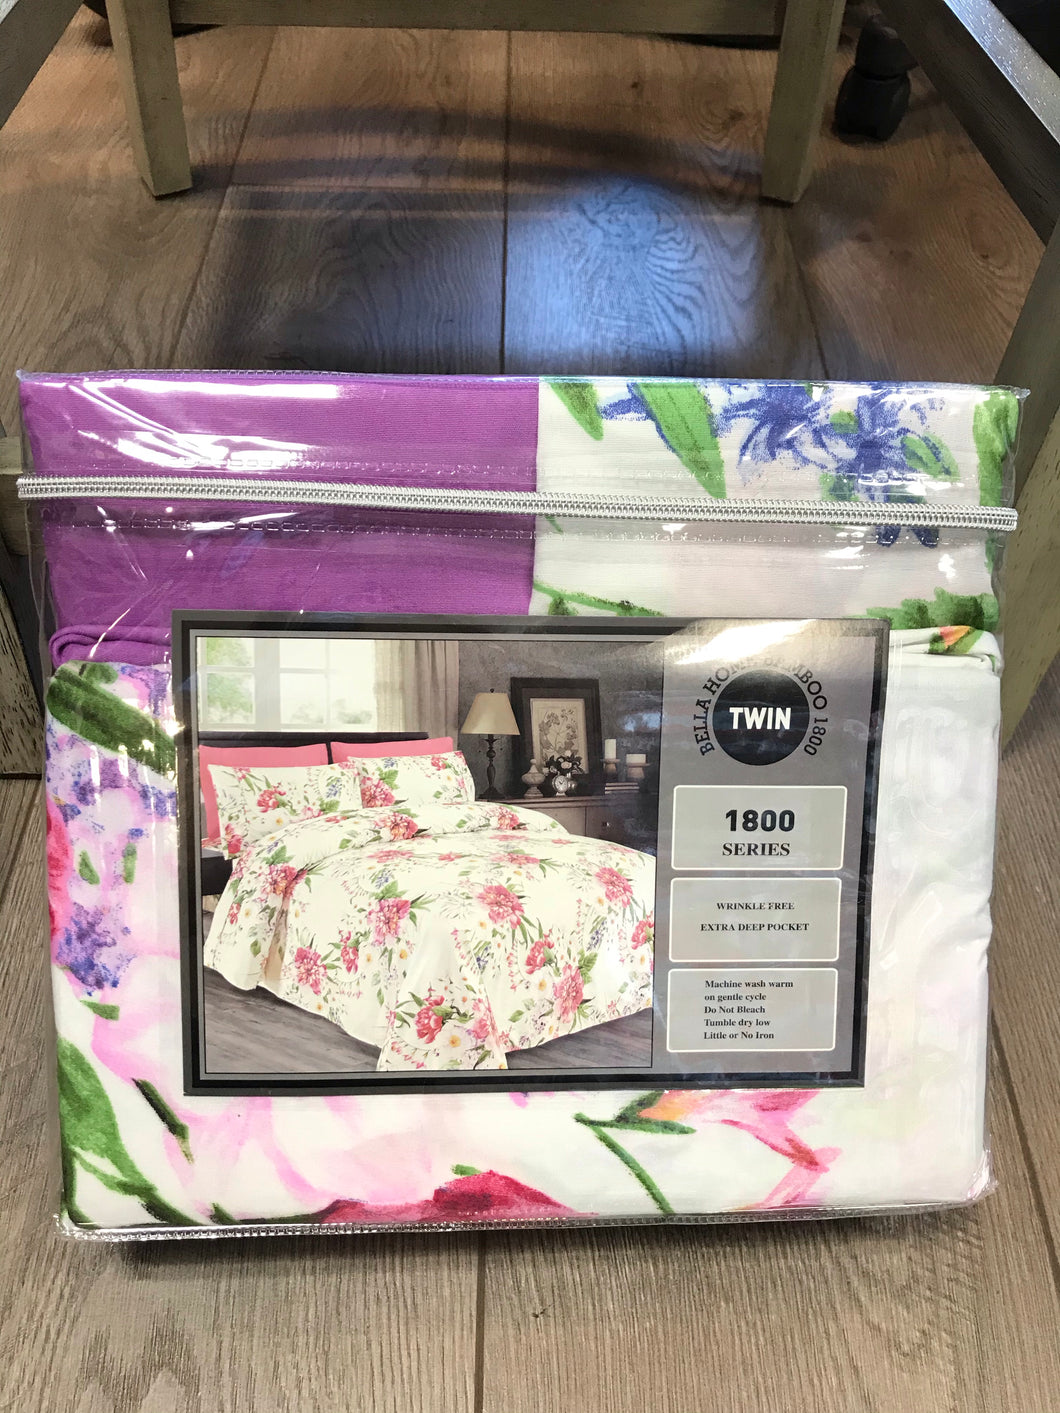 Twin Sheets Bella Home Bamboo 1800 Series Purple White Pink Flower Print